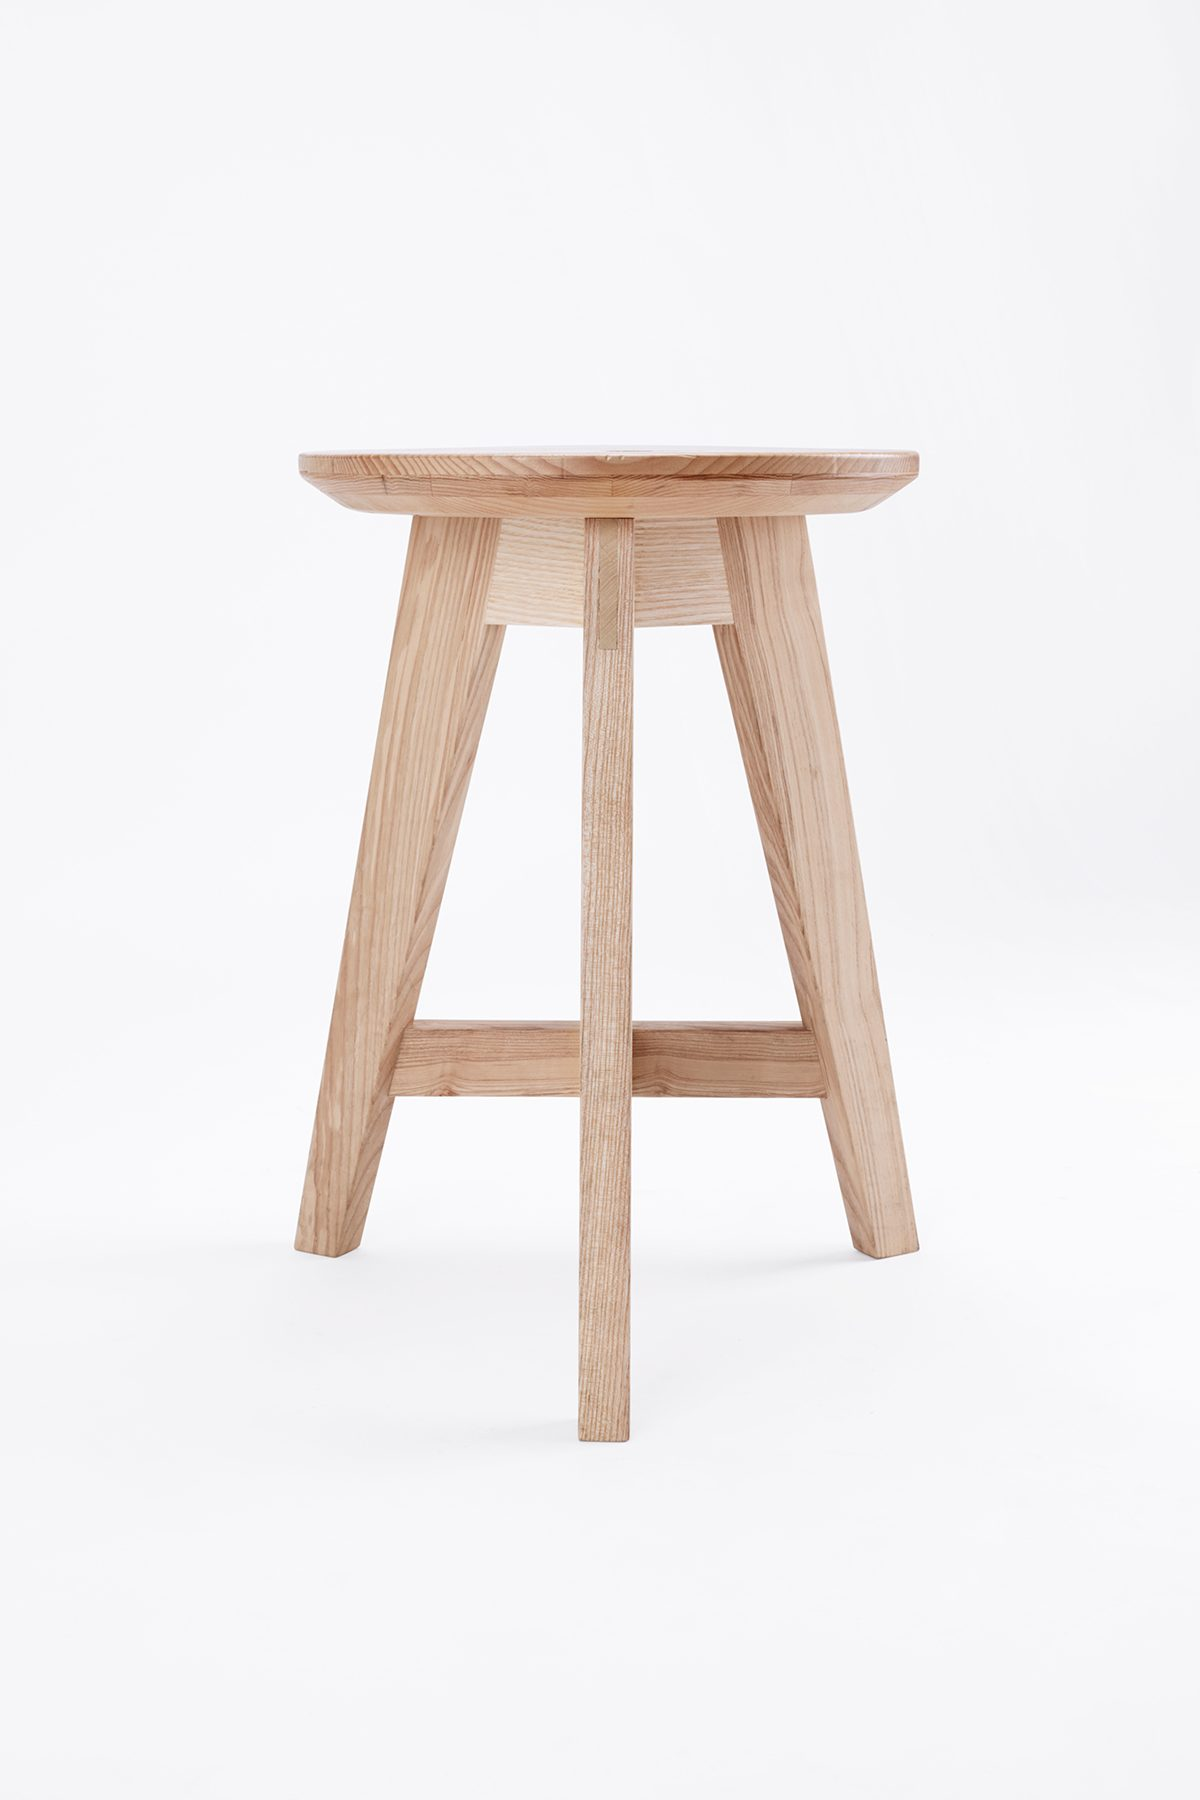 Jan Hendzel Studio Canteen stool